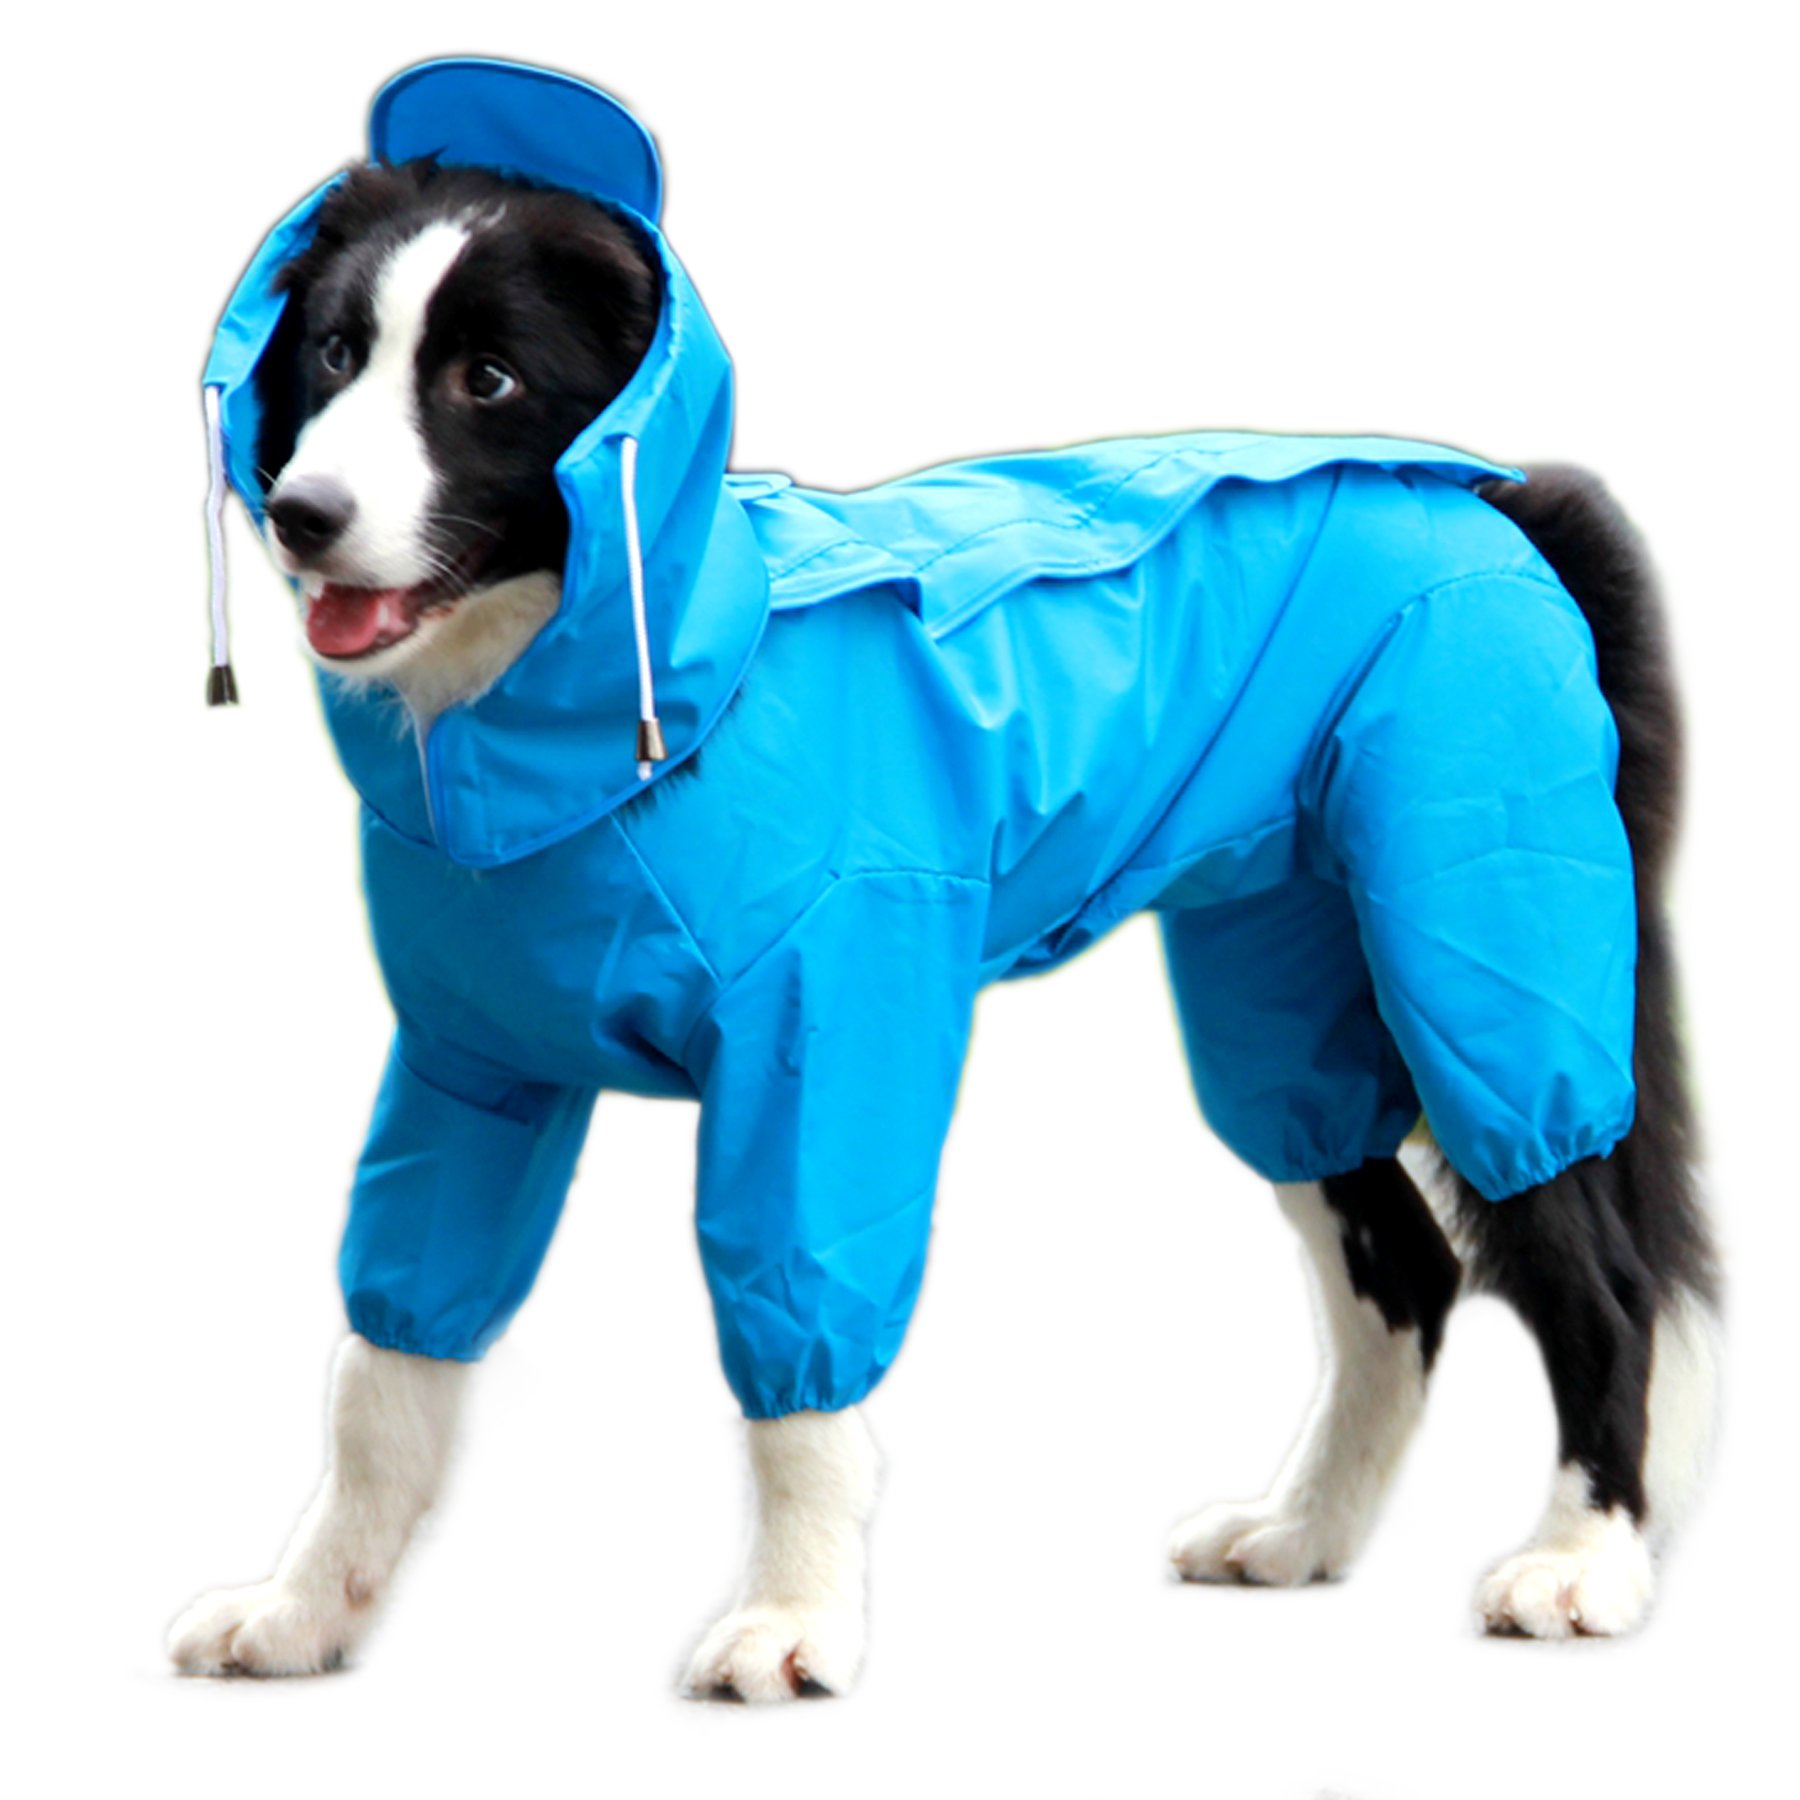 Alfie Pet by Petoga Couture - Bella Rainy Days Waterproof Raincoat (for Dogs and Cats) - Color: Blue, Size: Large